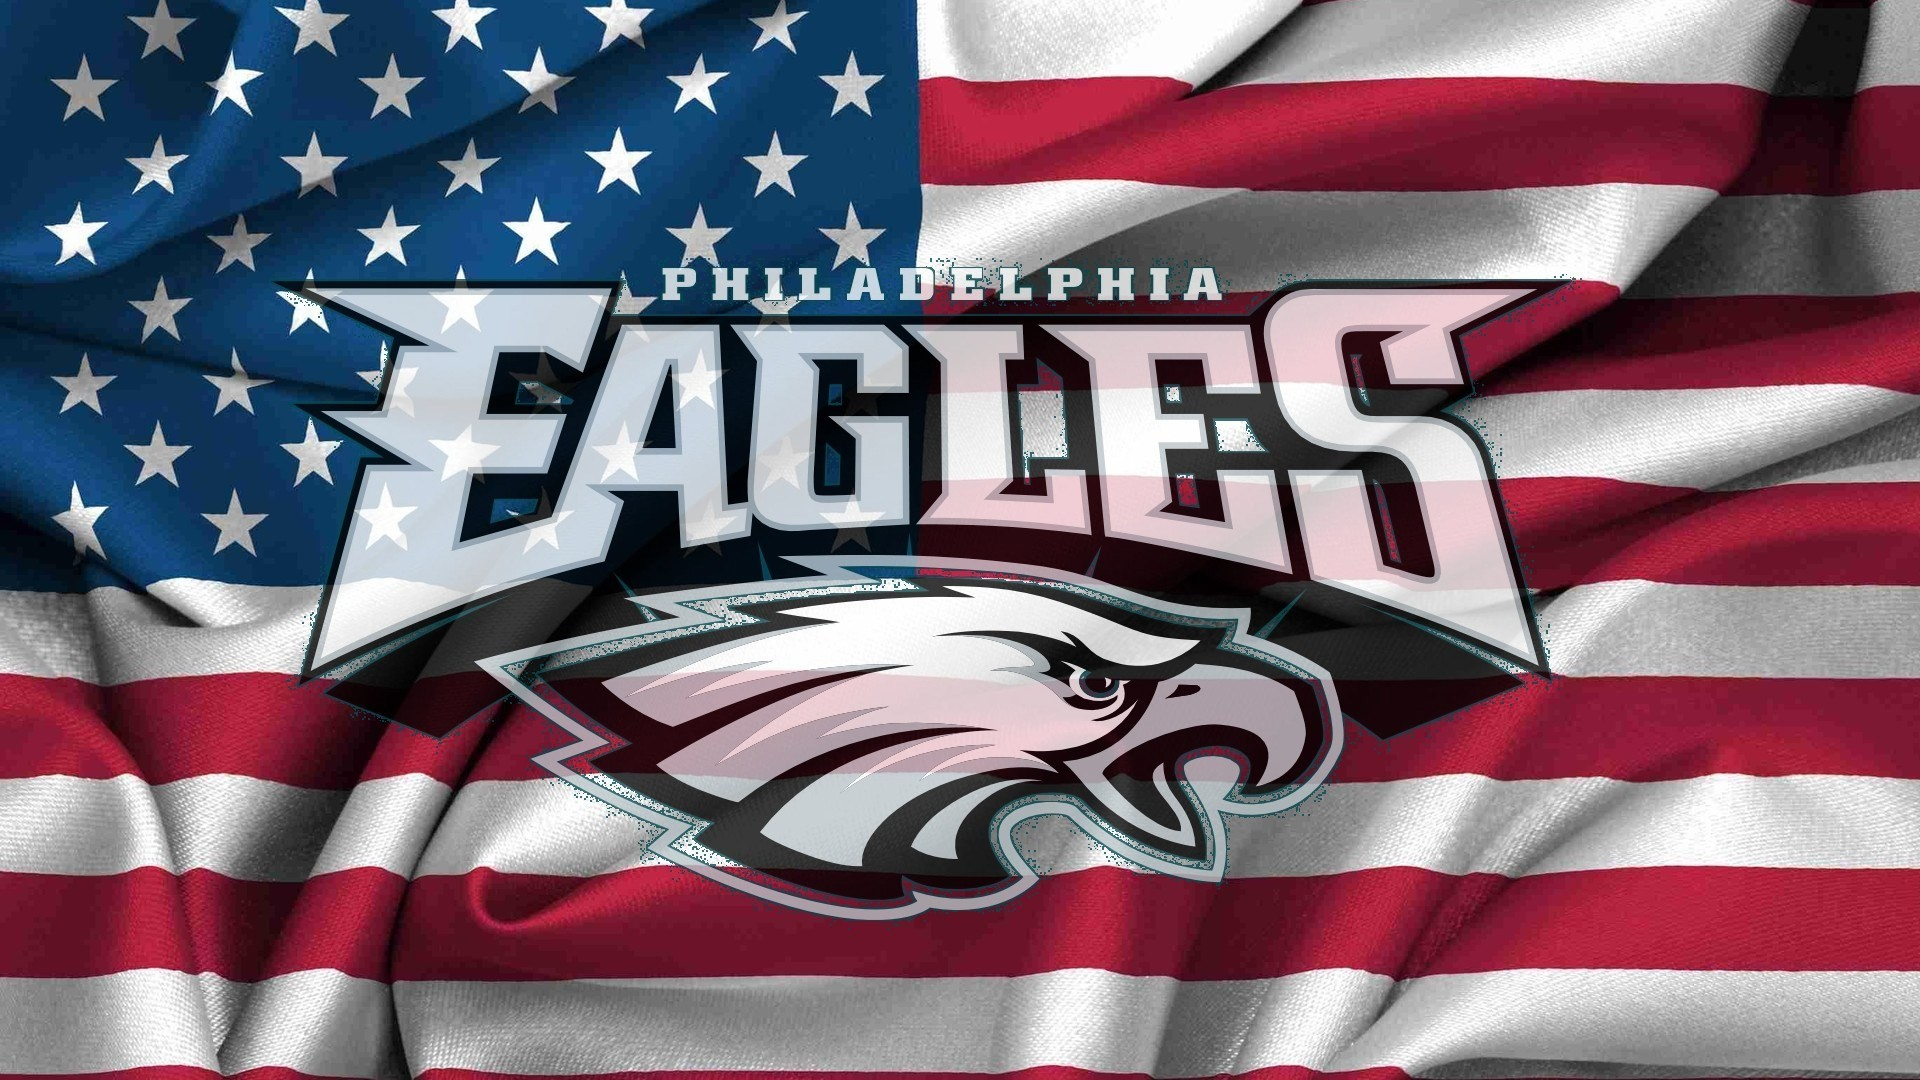 1920x1080 Philadelphia Eagles Wallpaper For Computer, HD Philadelphia Eagles 1024×768  Philadelphia Desktop Wallpapers (42 Wallpapers) | Adorable Wallpapers ...